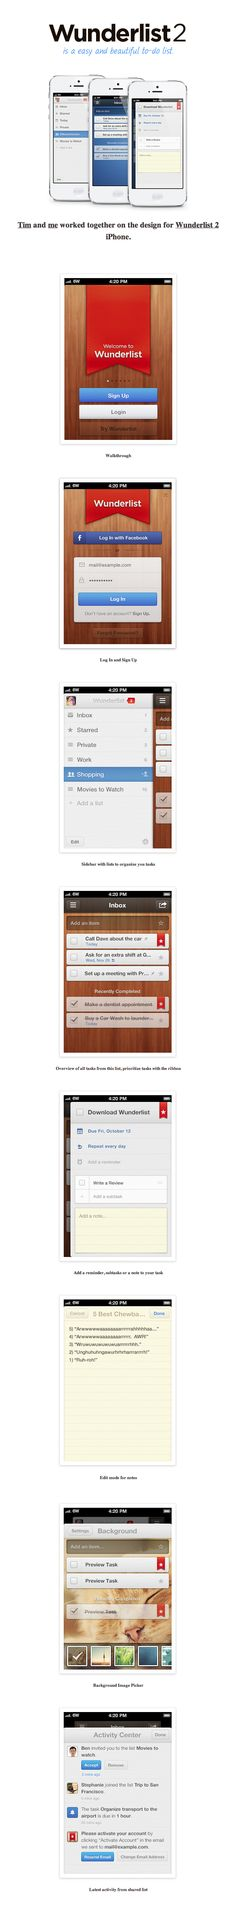 Wunderlist 2 for iPhone by Benjamin Rösner, via Behance *** Wunderlist is a beautiful and easy to use to-do app. It's available for iPhone, Android, Mac and Windows.